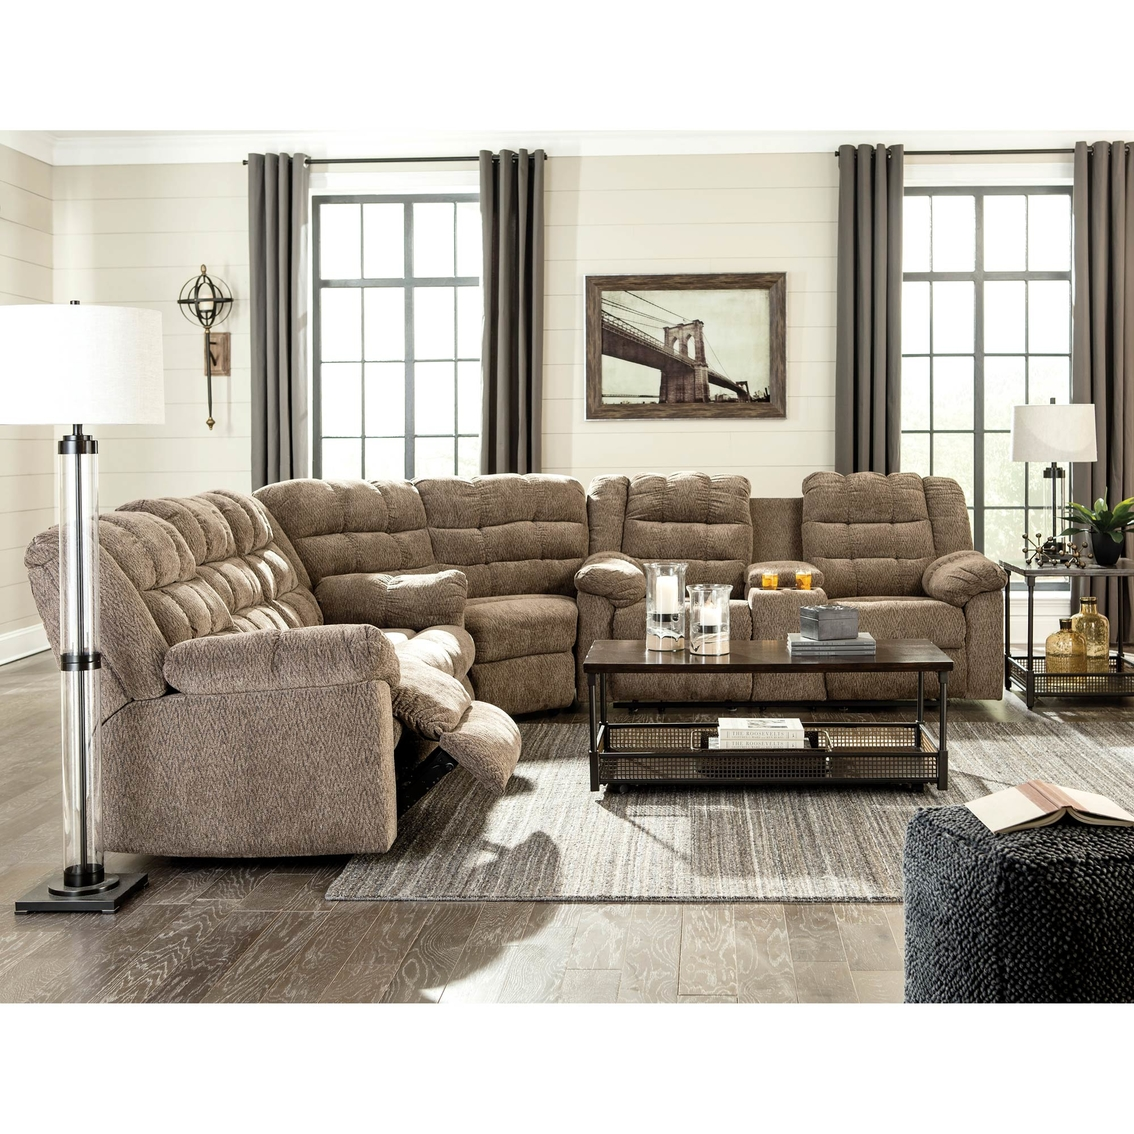 Couches 4 Ashley Workhorse Reclining Sectional With 4 Recliners Sofas